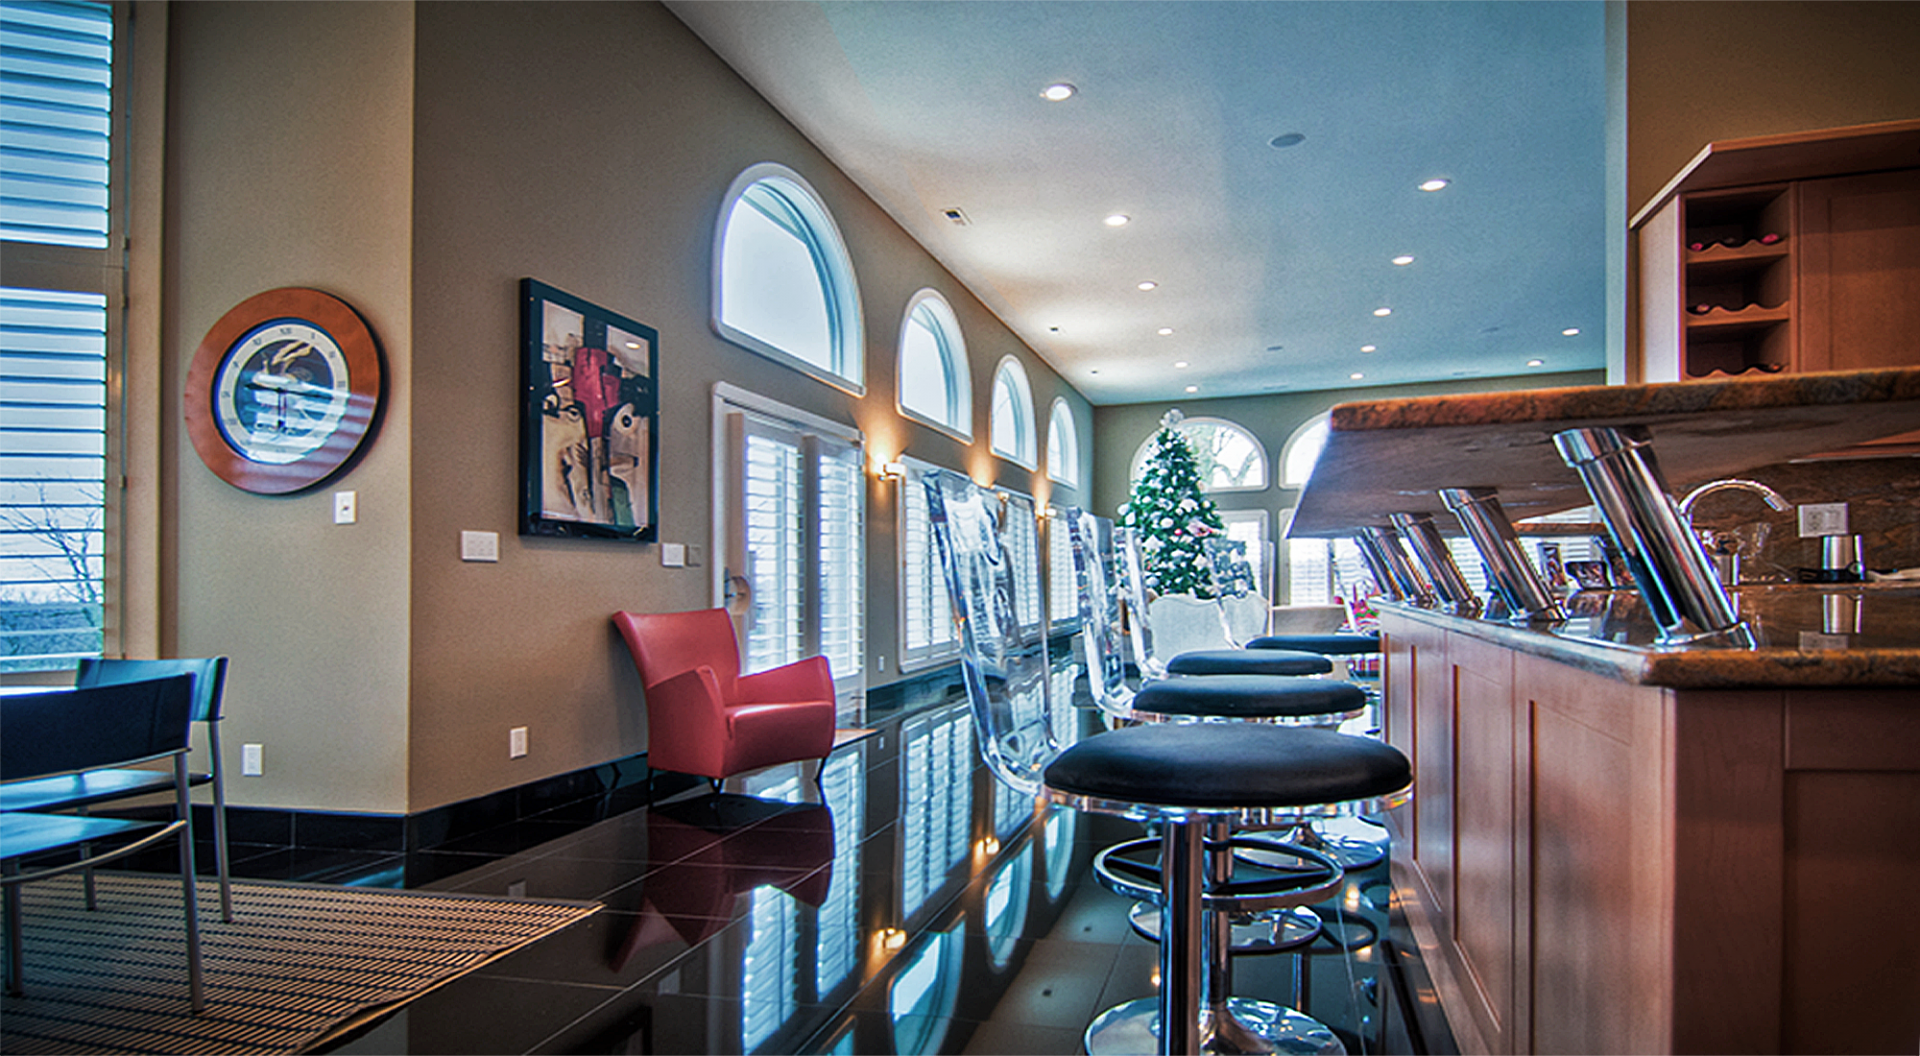 We will find your room's perfect color.